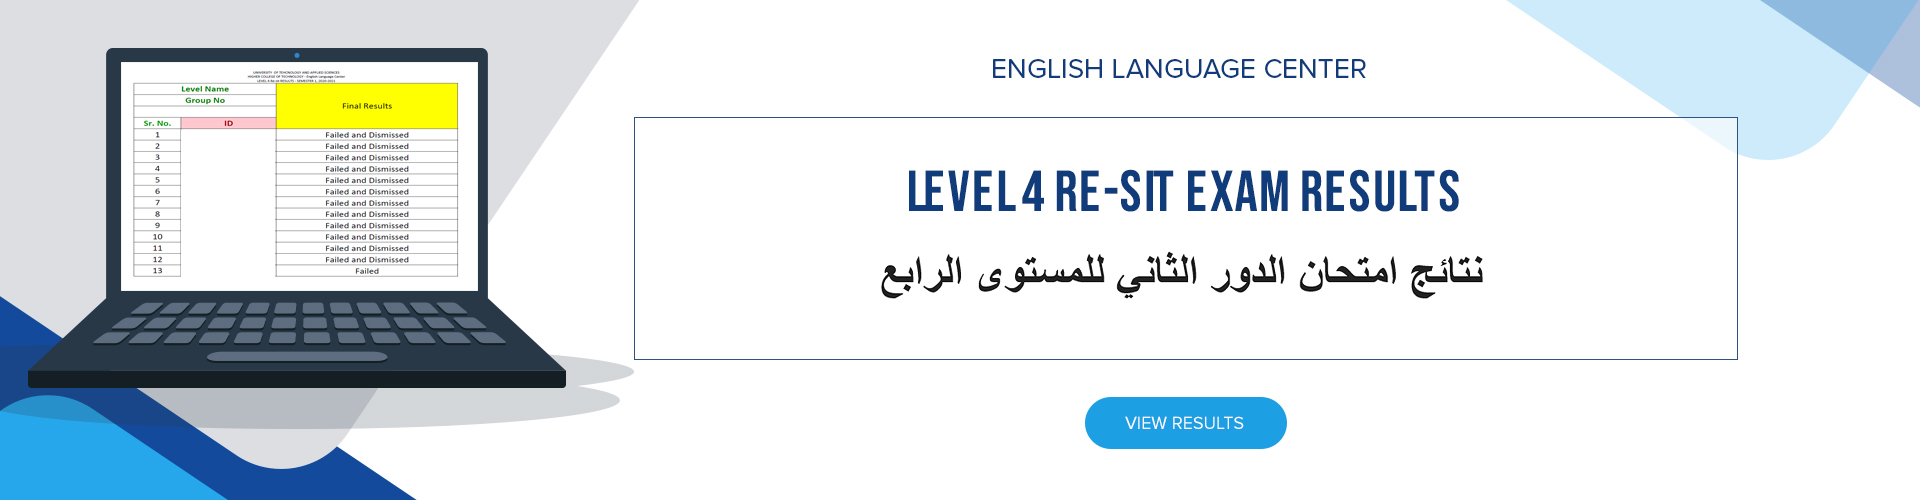 ELC - Level 4 Re-sit Exam Results